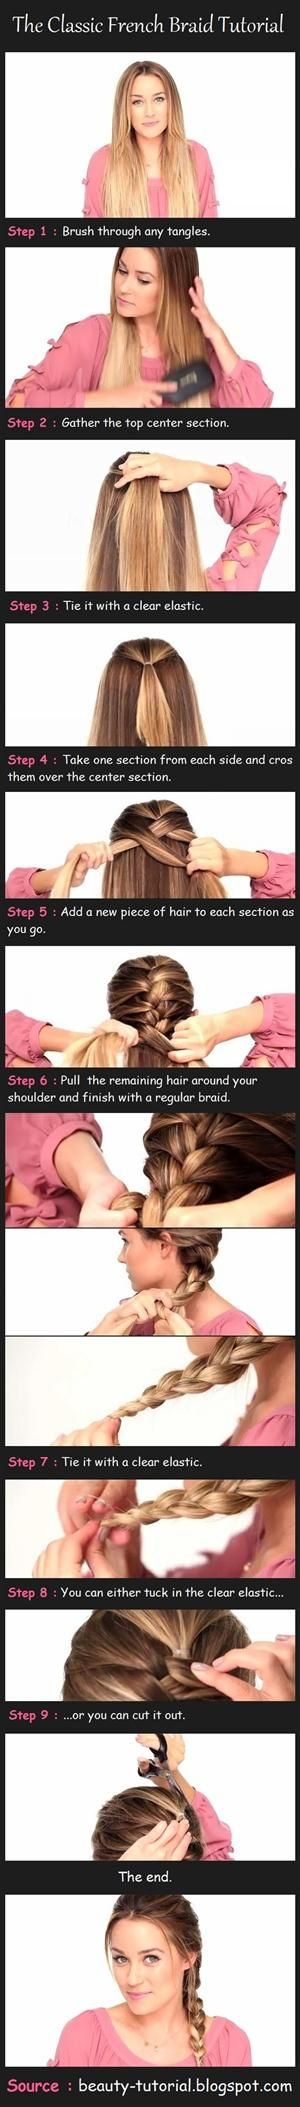 Great trick to french braiding your own hair... I've always wanted to know how to French braid!!